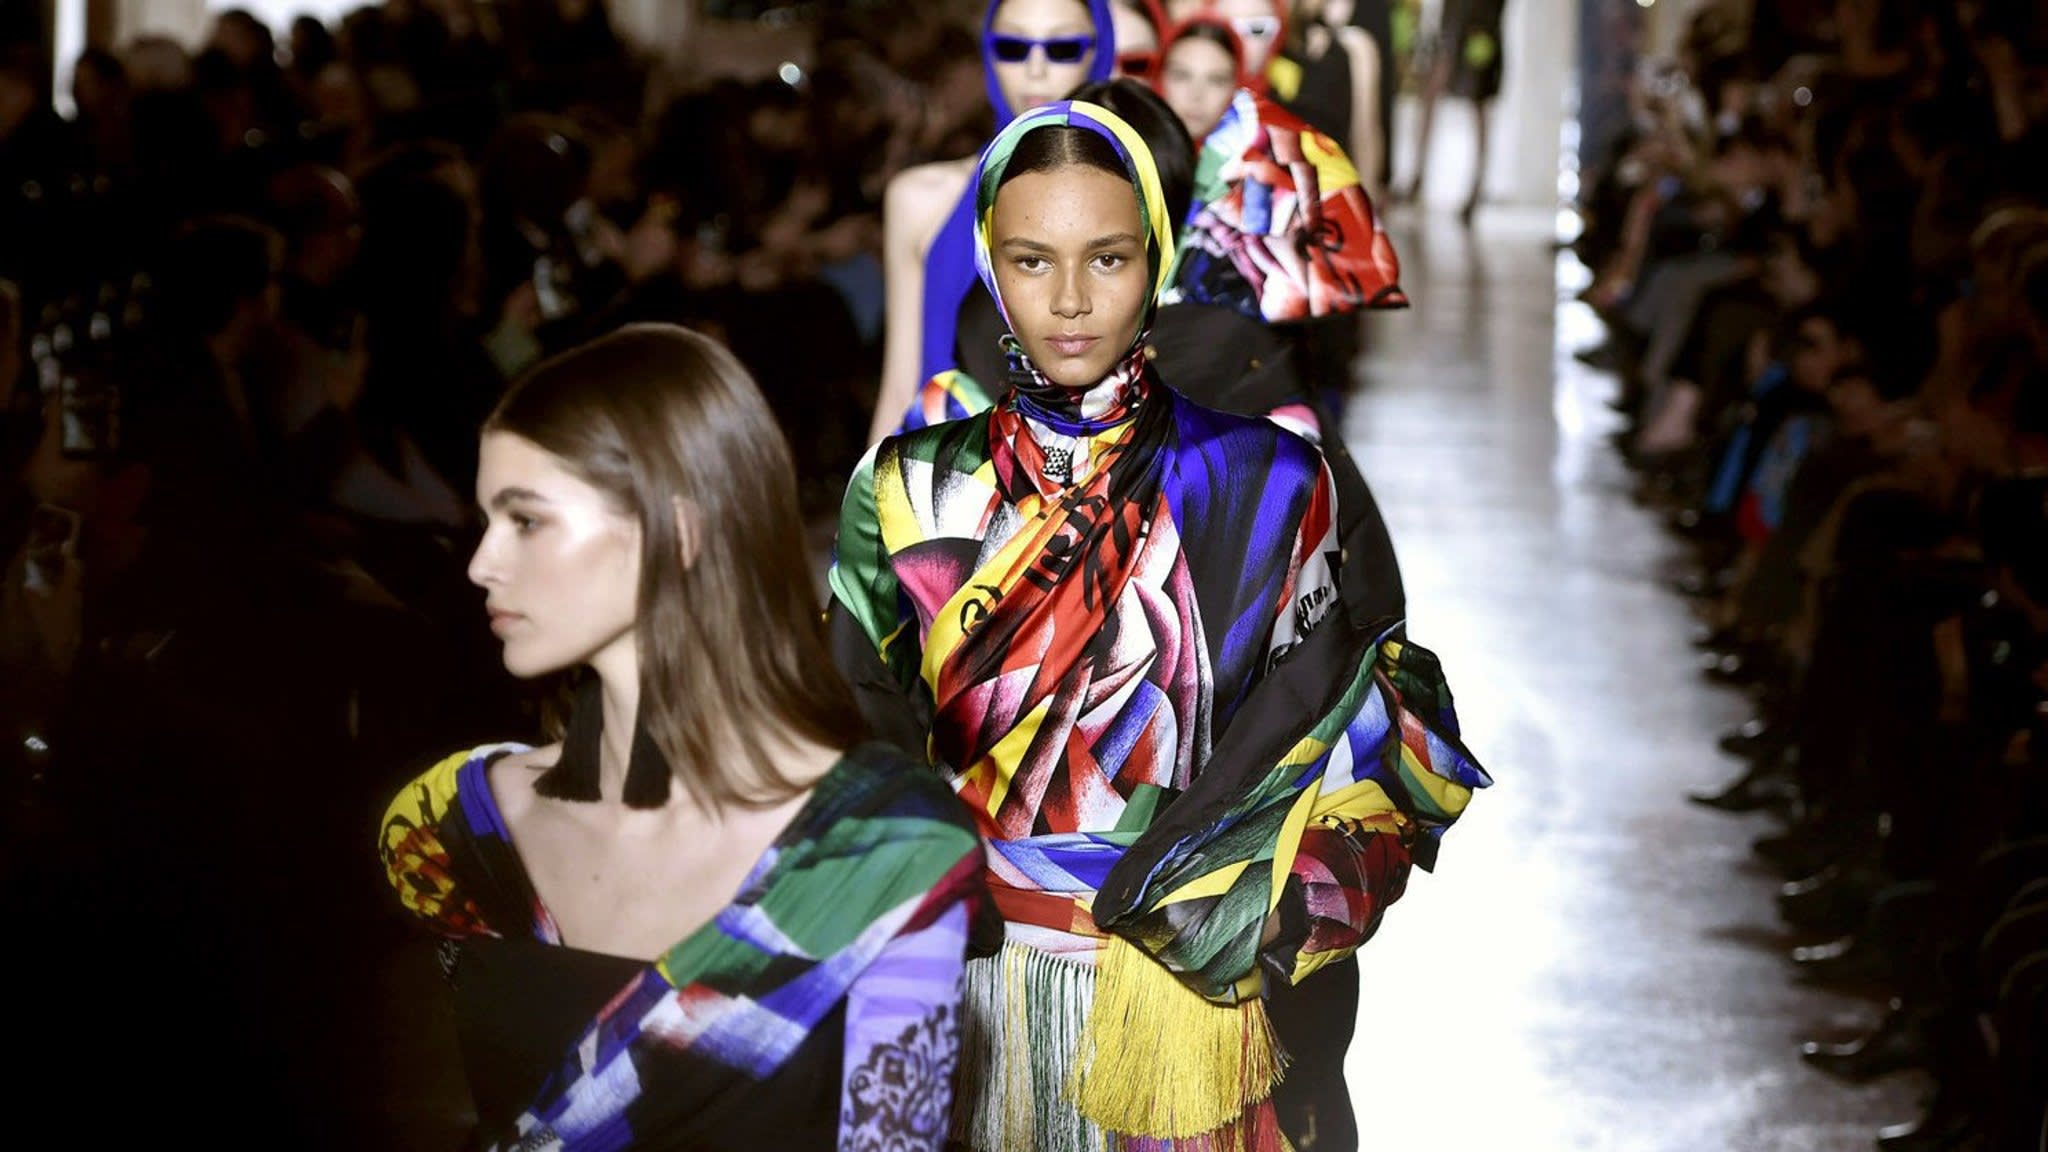 Versace AW18 review: headstrong fashions for a political age